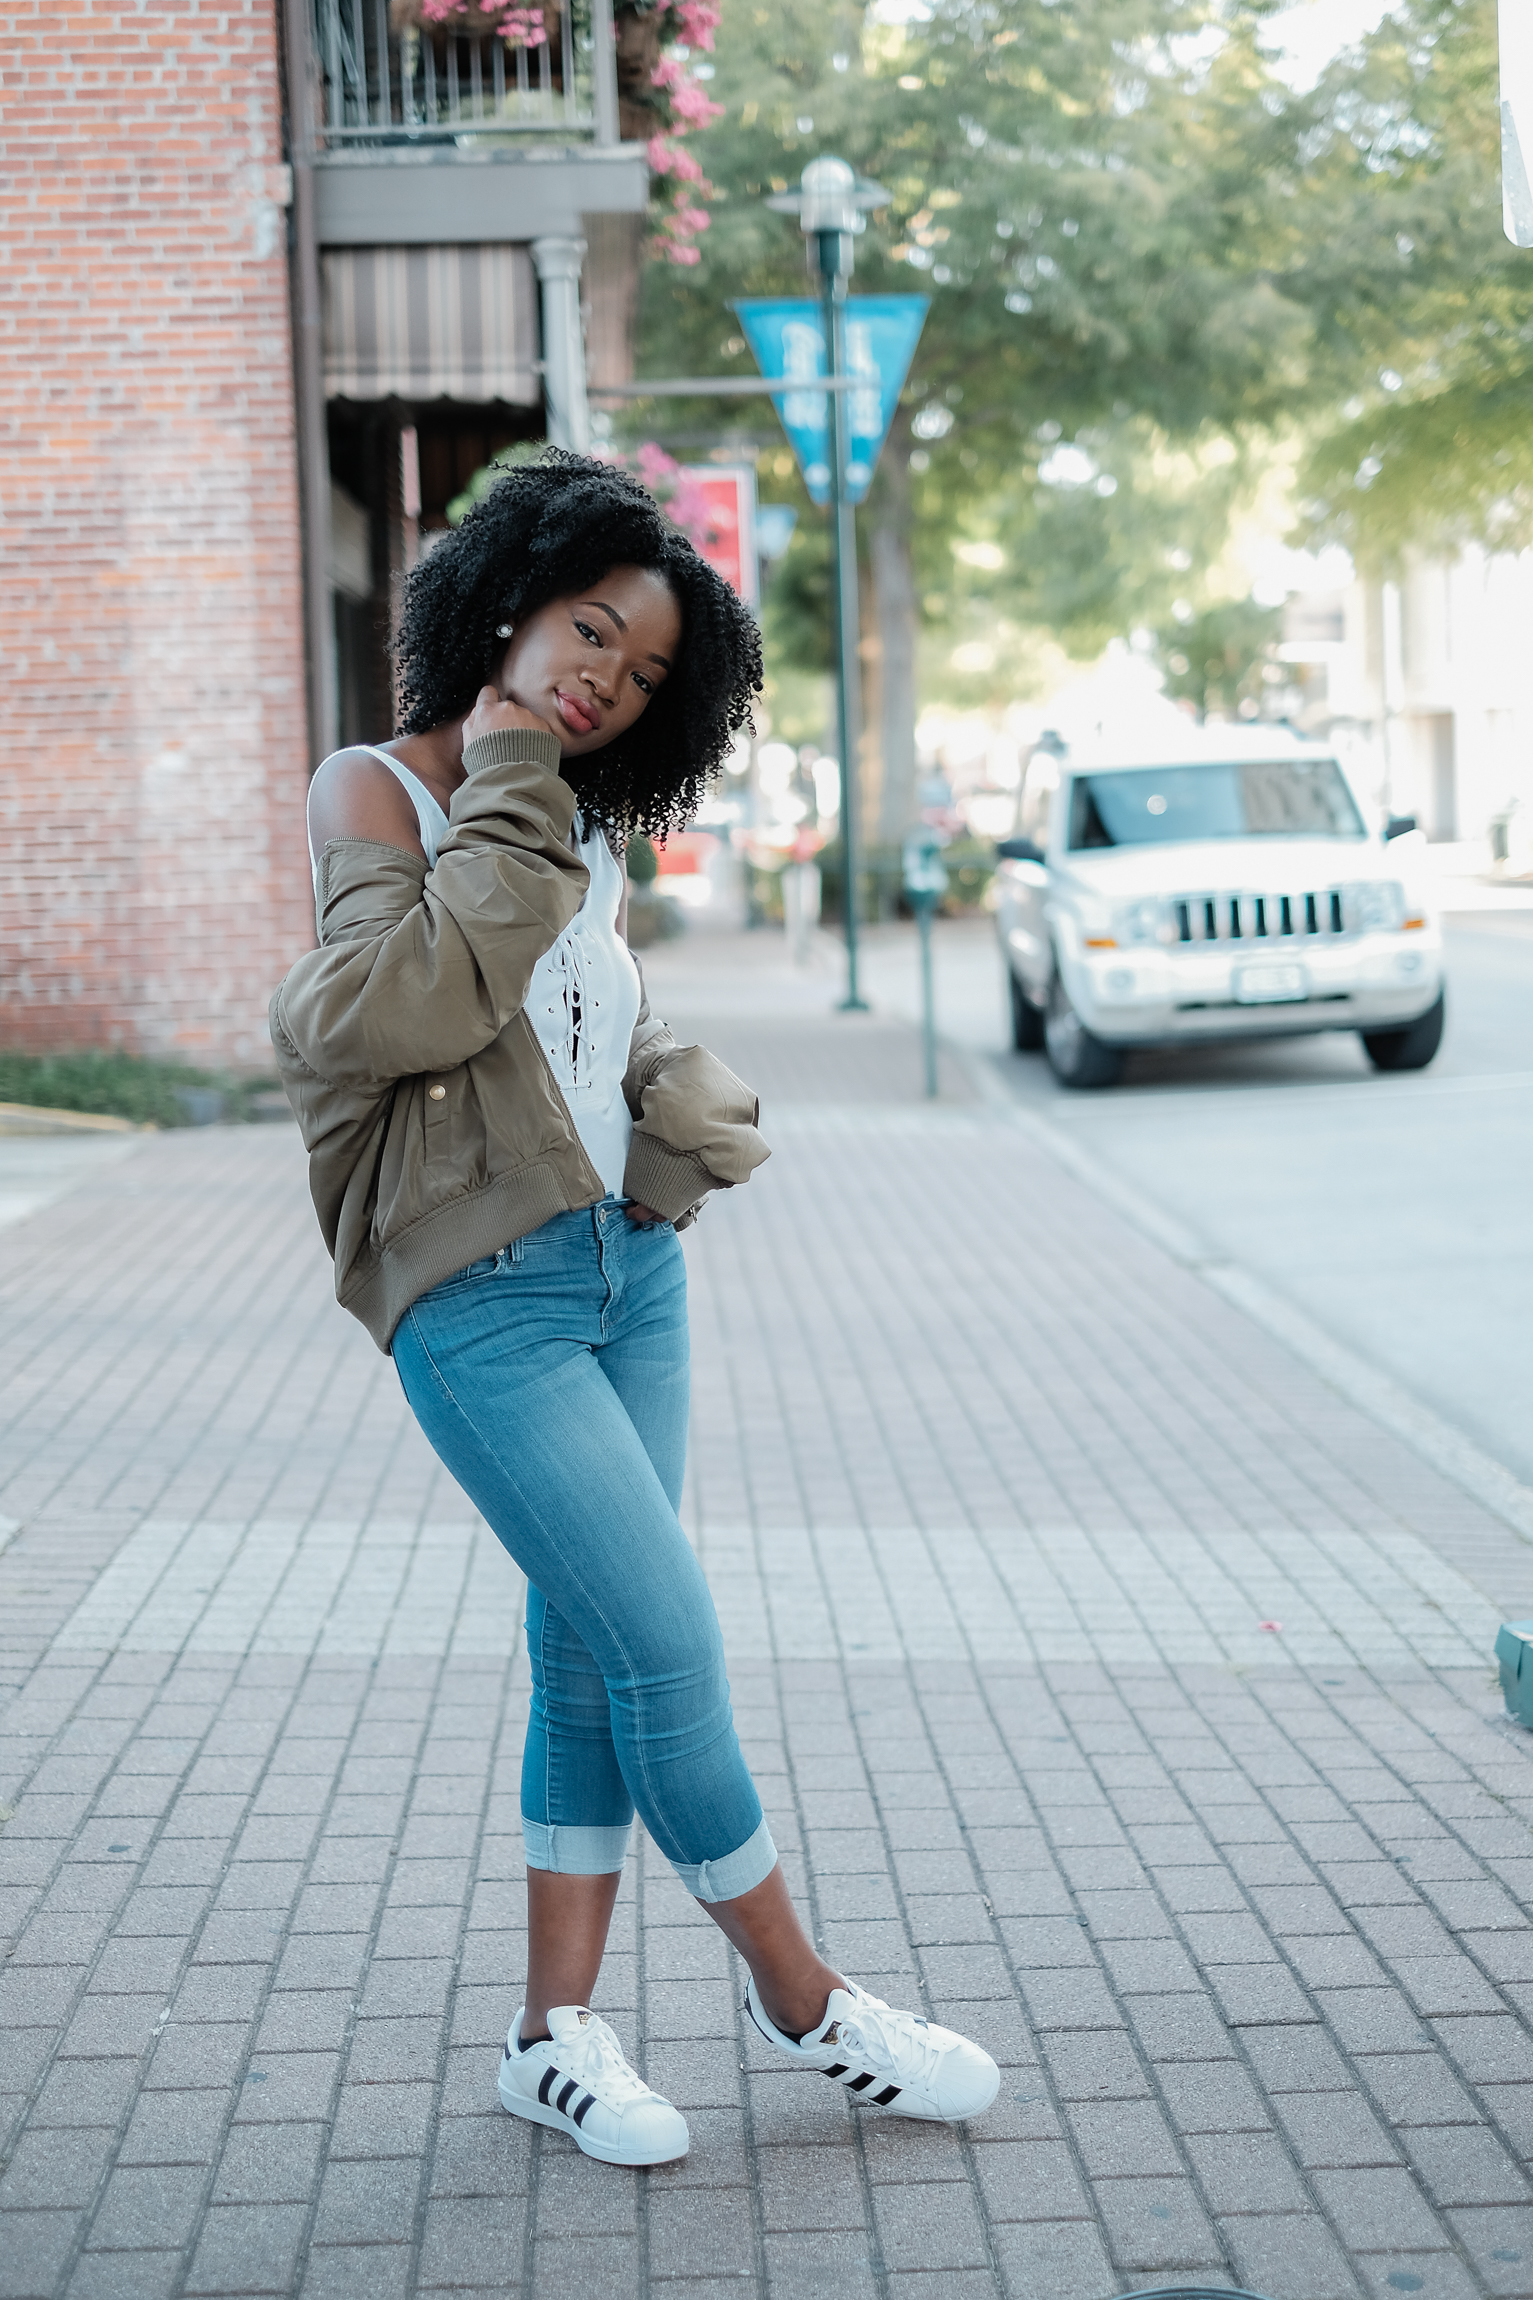 Outfit Details-    Jacket/Jeans/Top- RossDressForLess    Shoes- Adidas